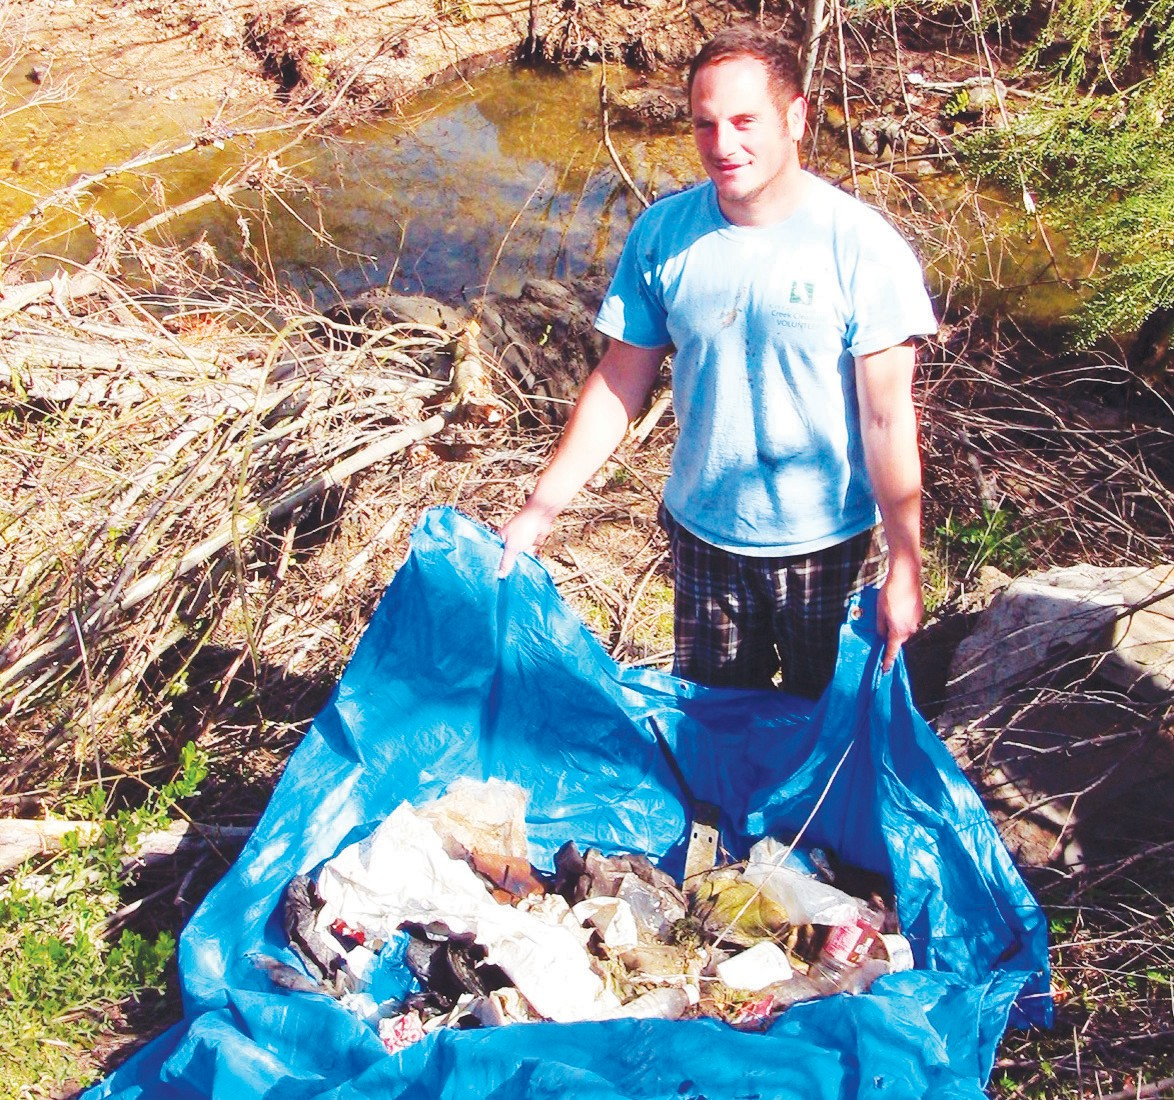 BIG HAUL—A volunteer carries off a load of trash during a previous similar creek cleanup. Last year saw the removal of about 2,000 pounds of garbage. ACORN FILE PHOTO